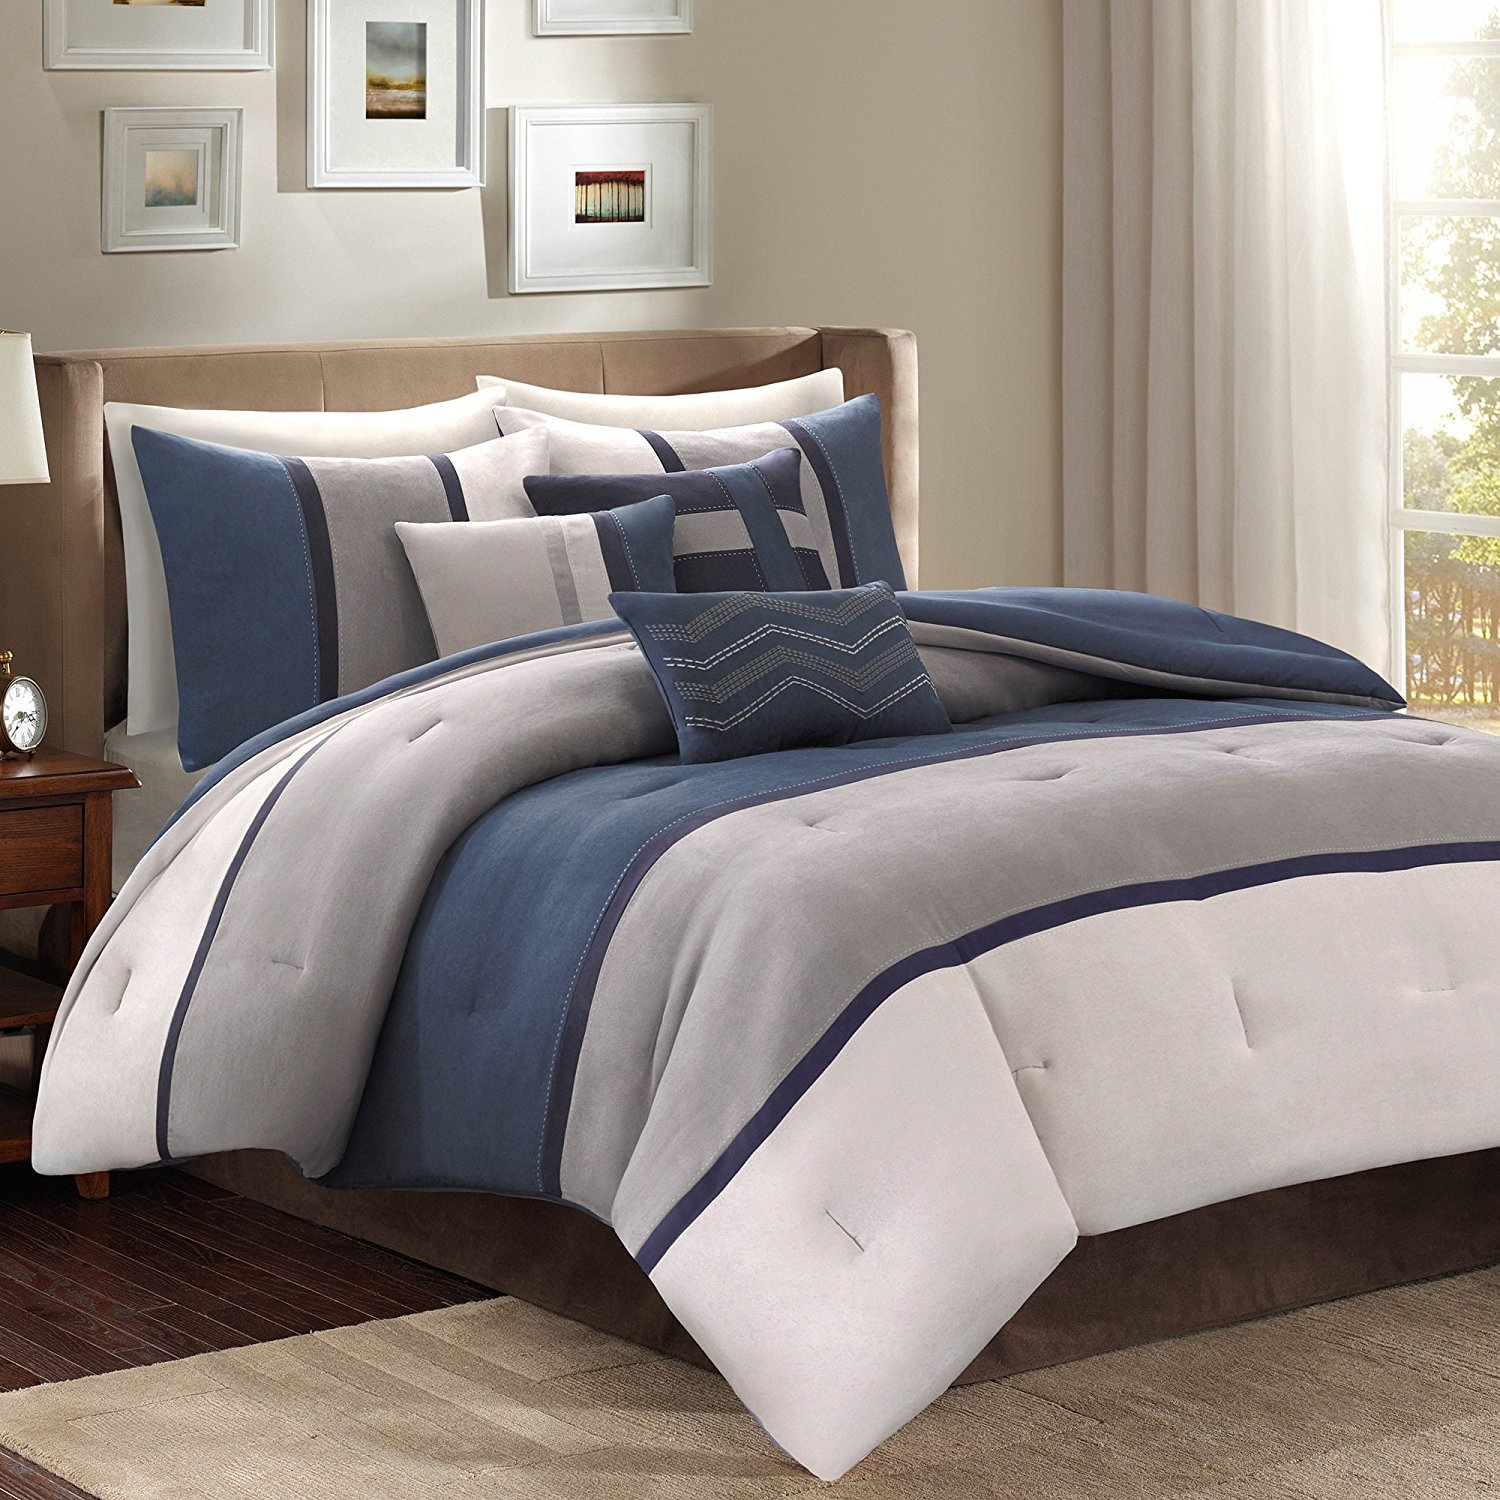 D&H 7 Piece Navy Blue Grey Striped Comforter Queen Set, Blue Beige Color Block Adult Bedding Master Bedroom Stylish Patchwork Pattern Elegant Themed Traditional, Polyester Stripe